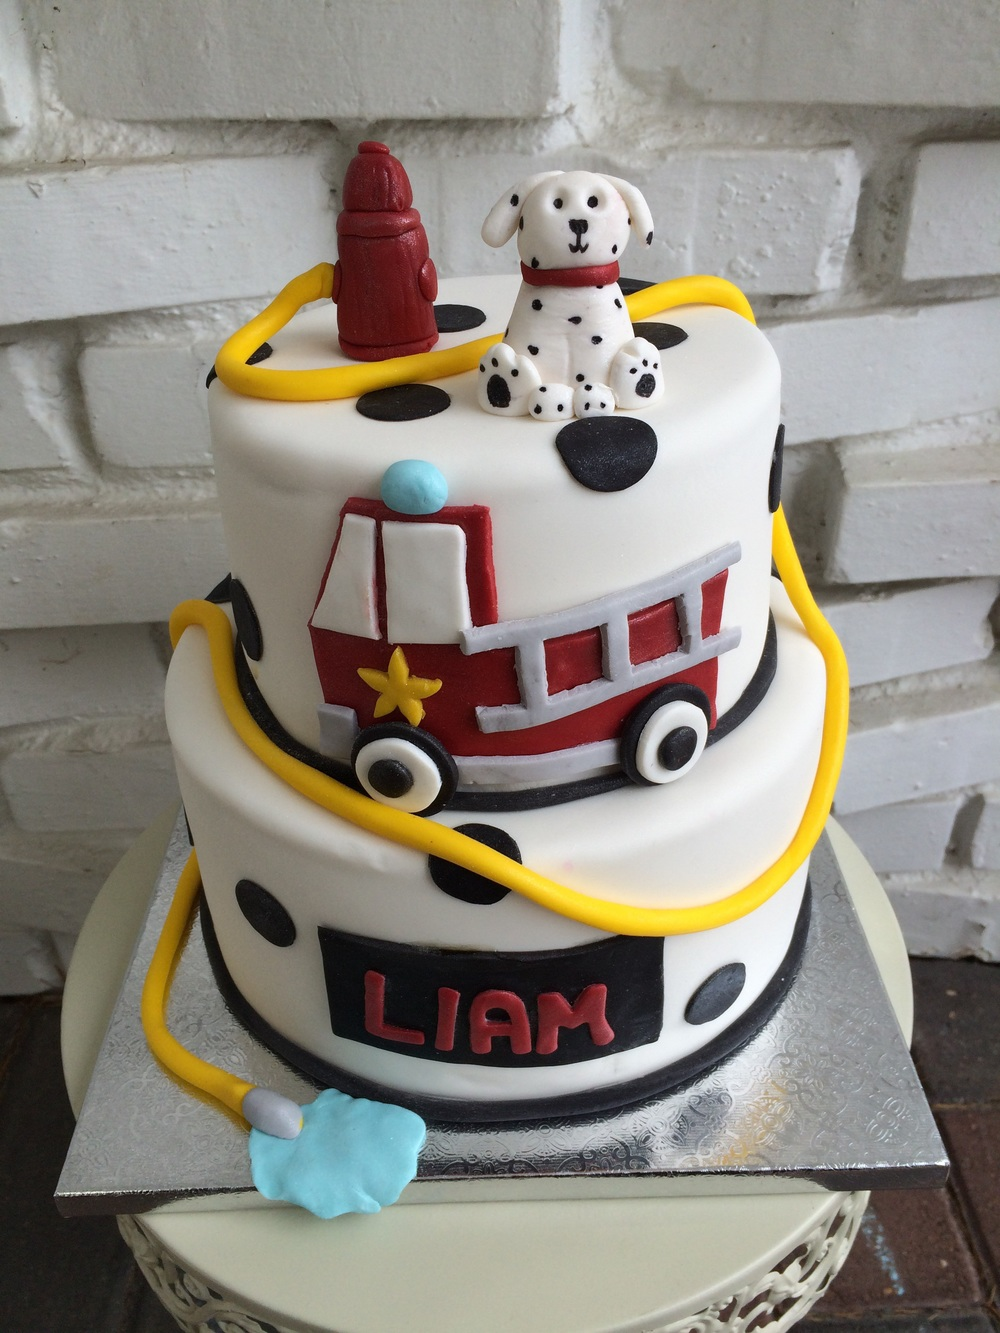 Happy 3rd birthday to Liam! Vanilla bean fire truck theme cake